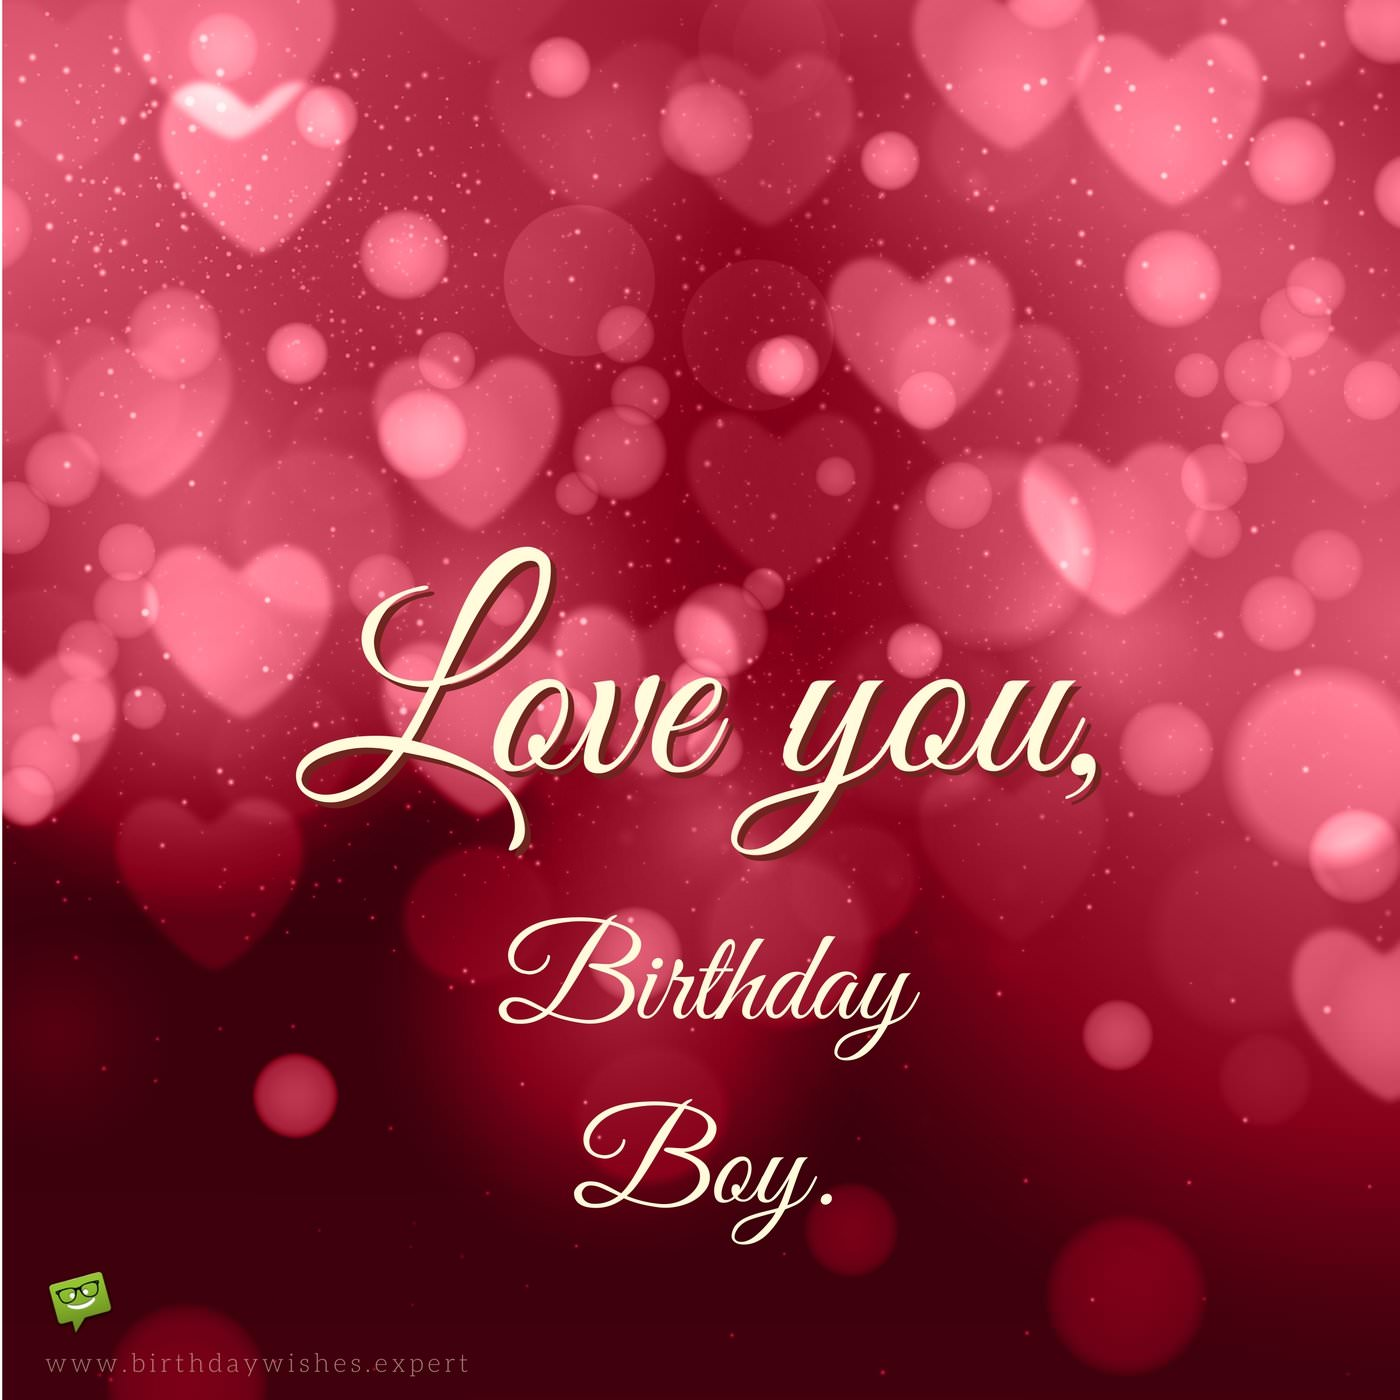 Romantic Birthday Love Messages: Romantic Birthday Wishes For Boyfriends